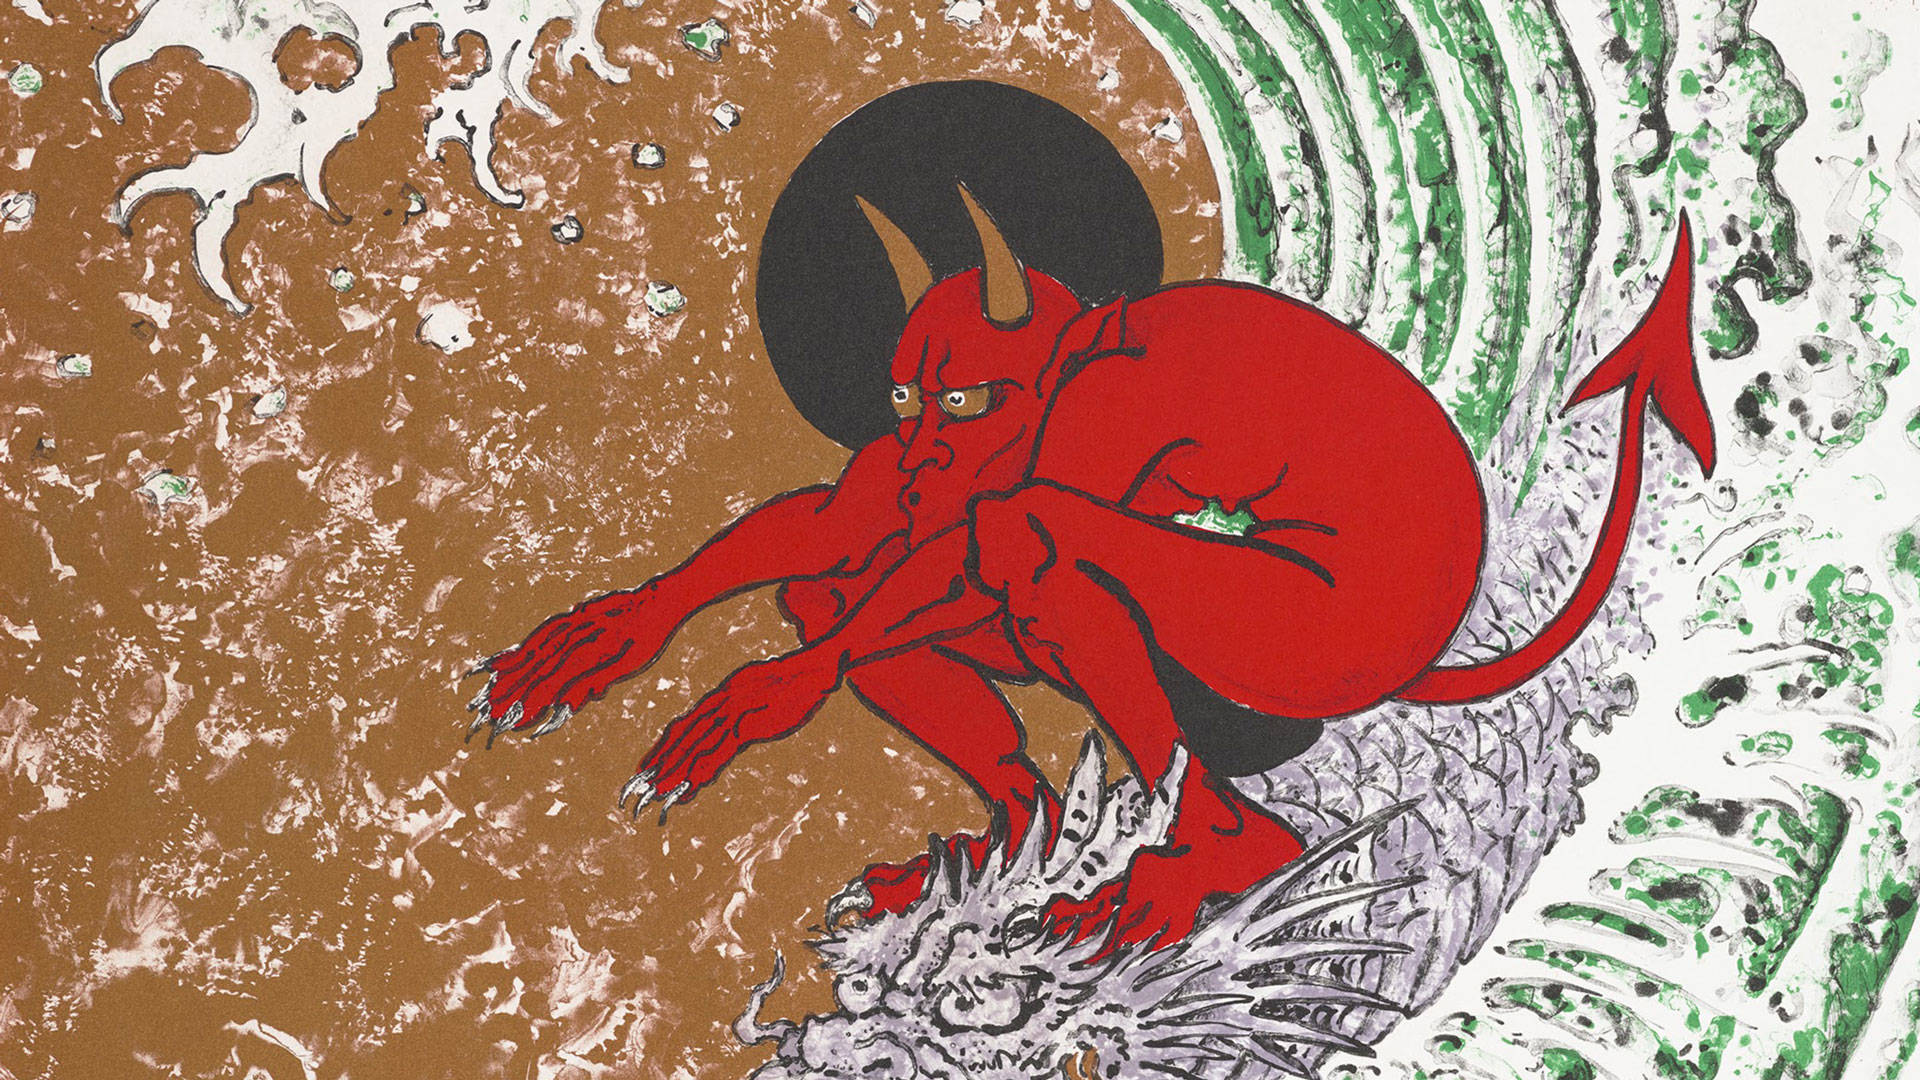 Don Ed Hardy, 'Surf or Die,' 2004. Printed by Bud Shark; Published by Shark's Ink, Colorado. Image courtesy of the Fine Arts Museums of San Francisco